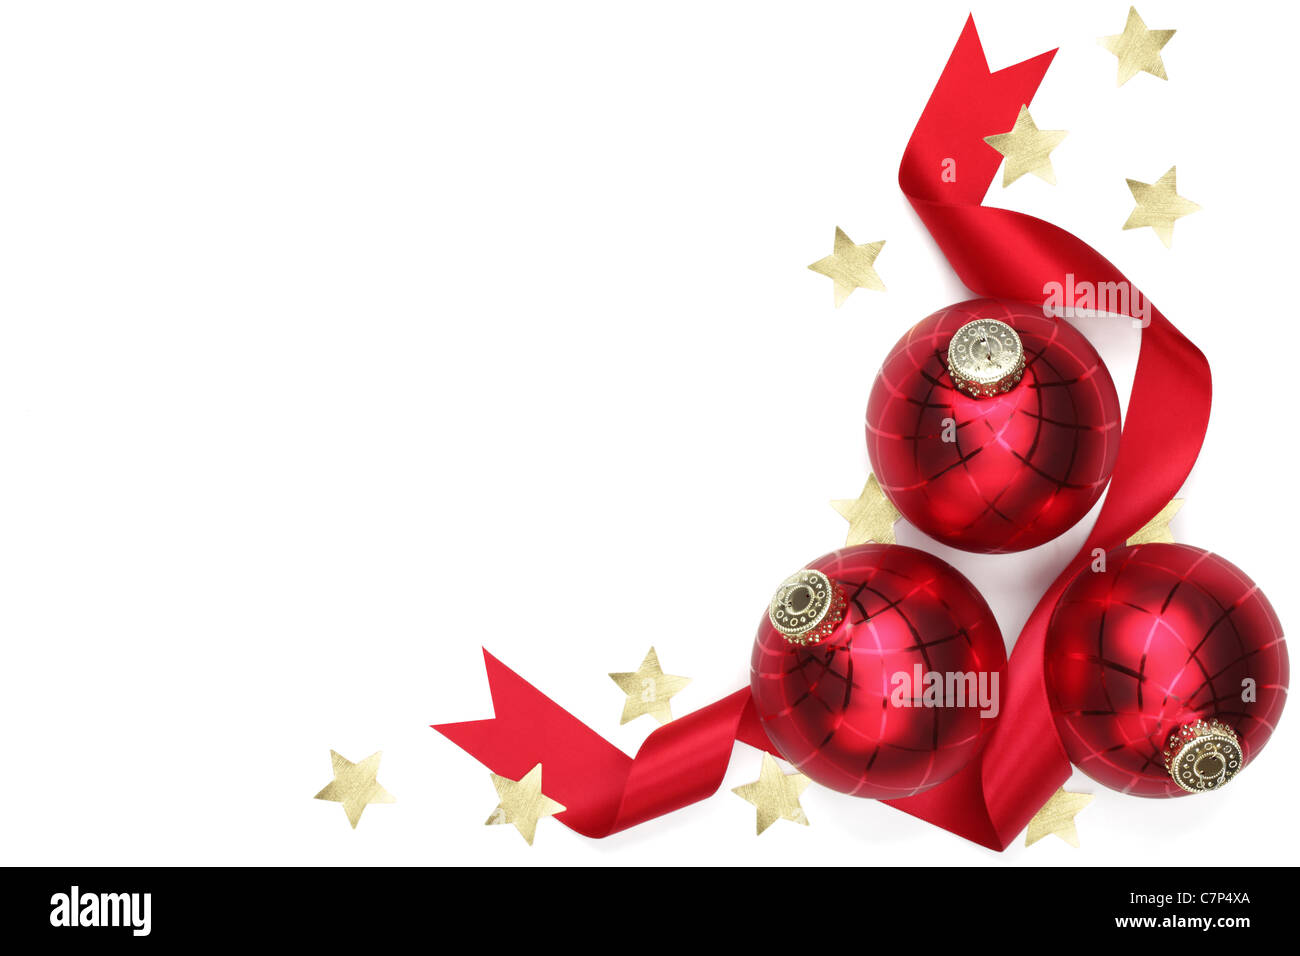 Three Christmas balls with ribbon and confetti stars on white background. - Stock Image